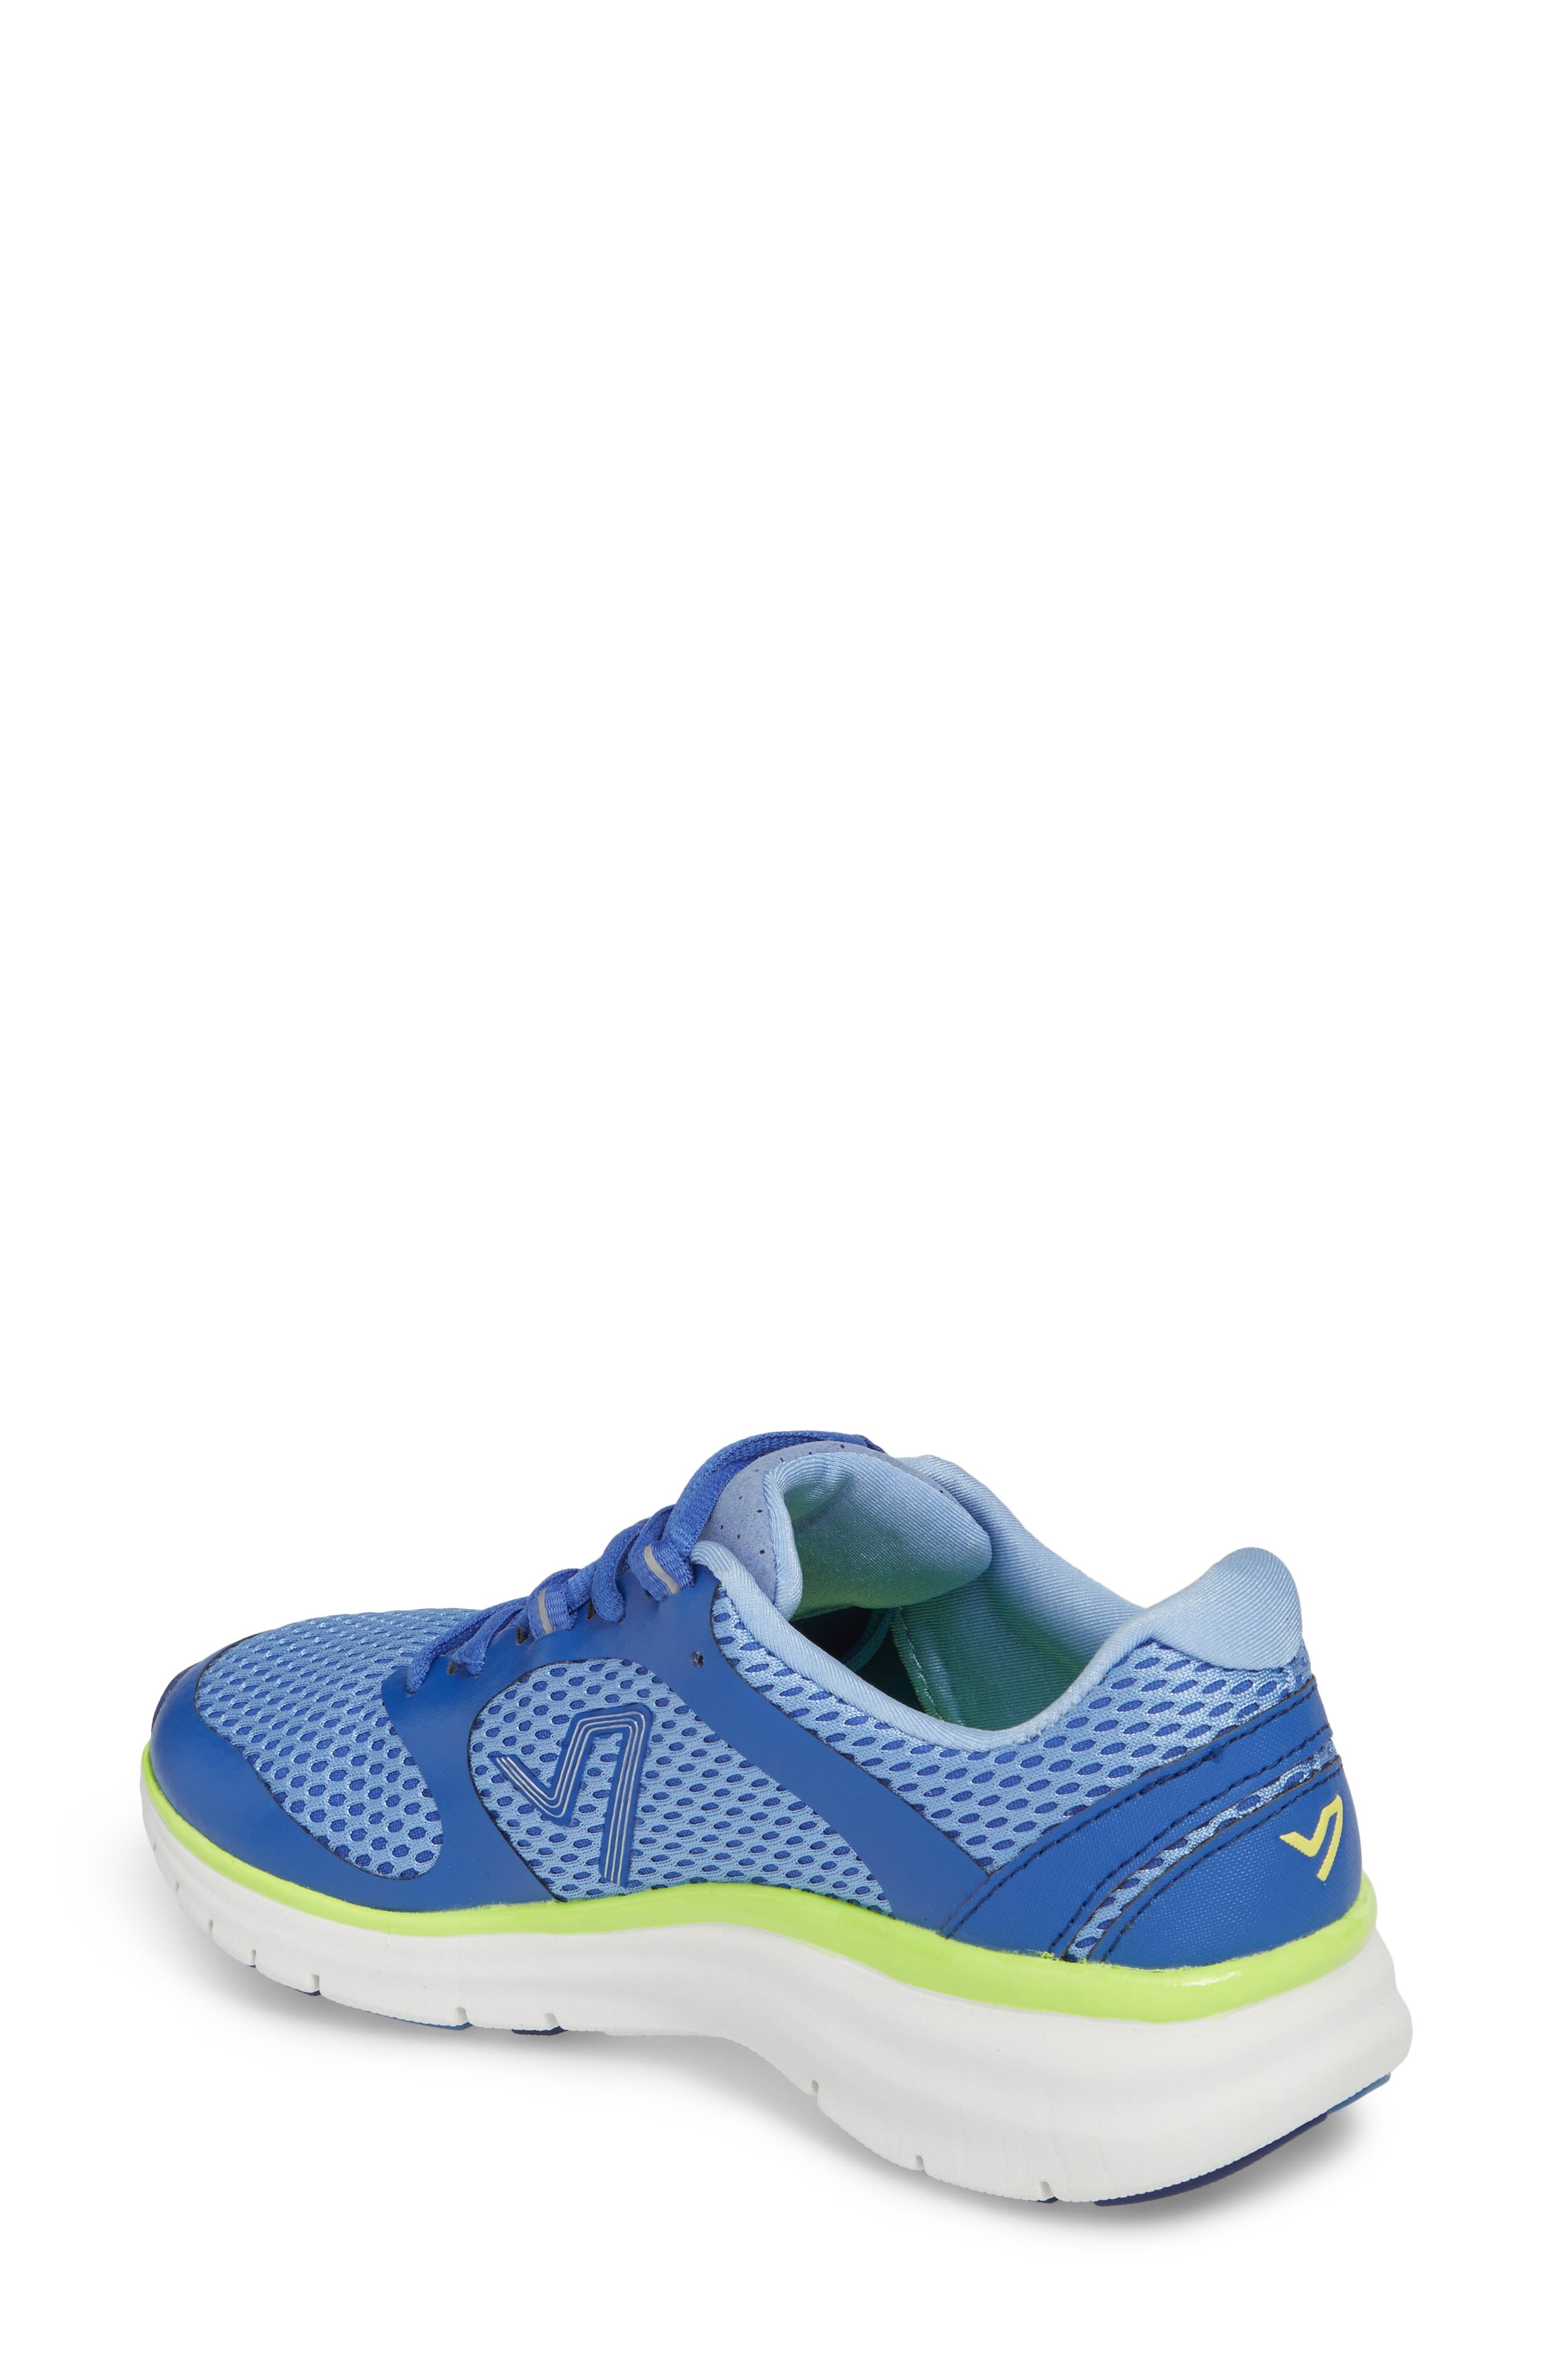 Elation Sneaker,                             Alternate thumbnail 2, color,                             BLUE/ YELLOW